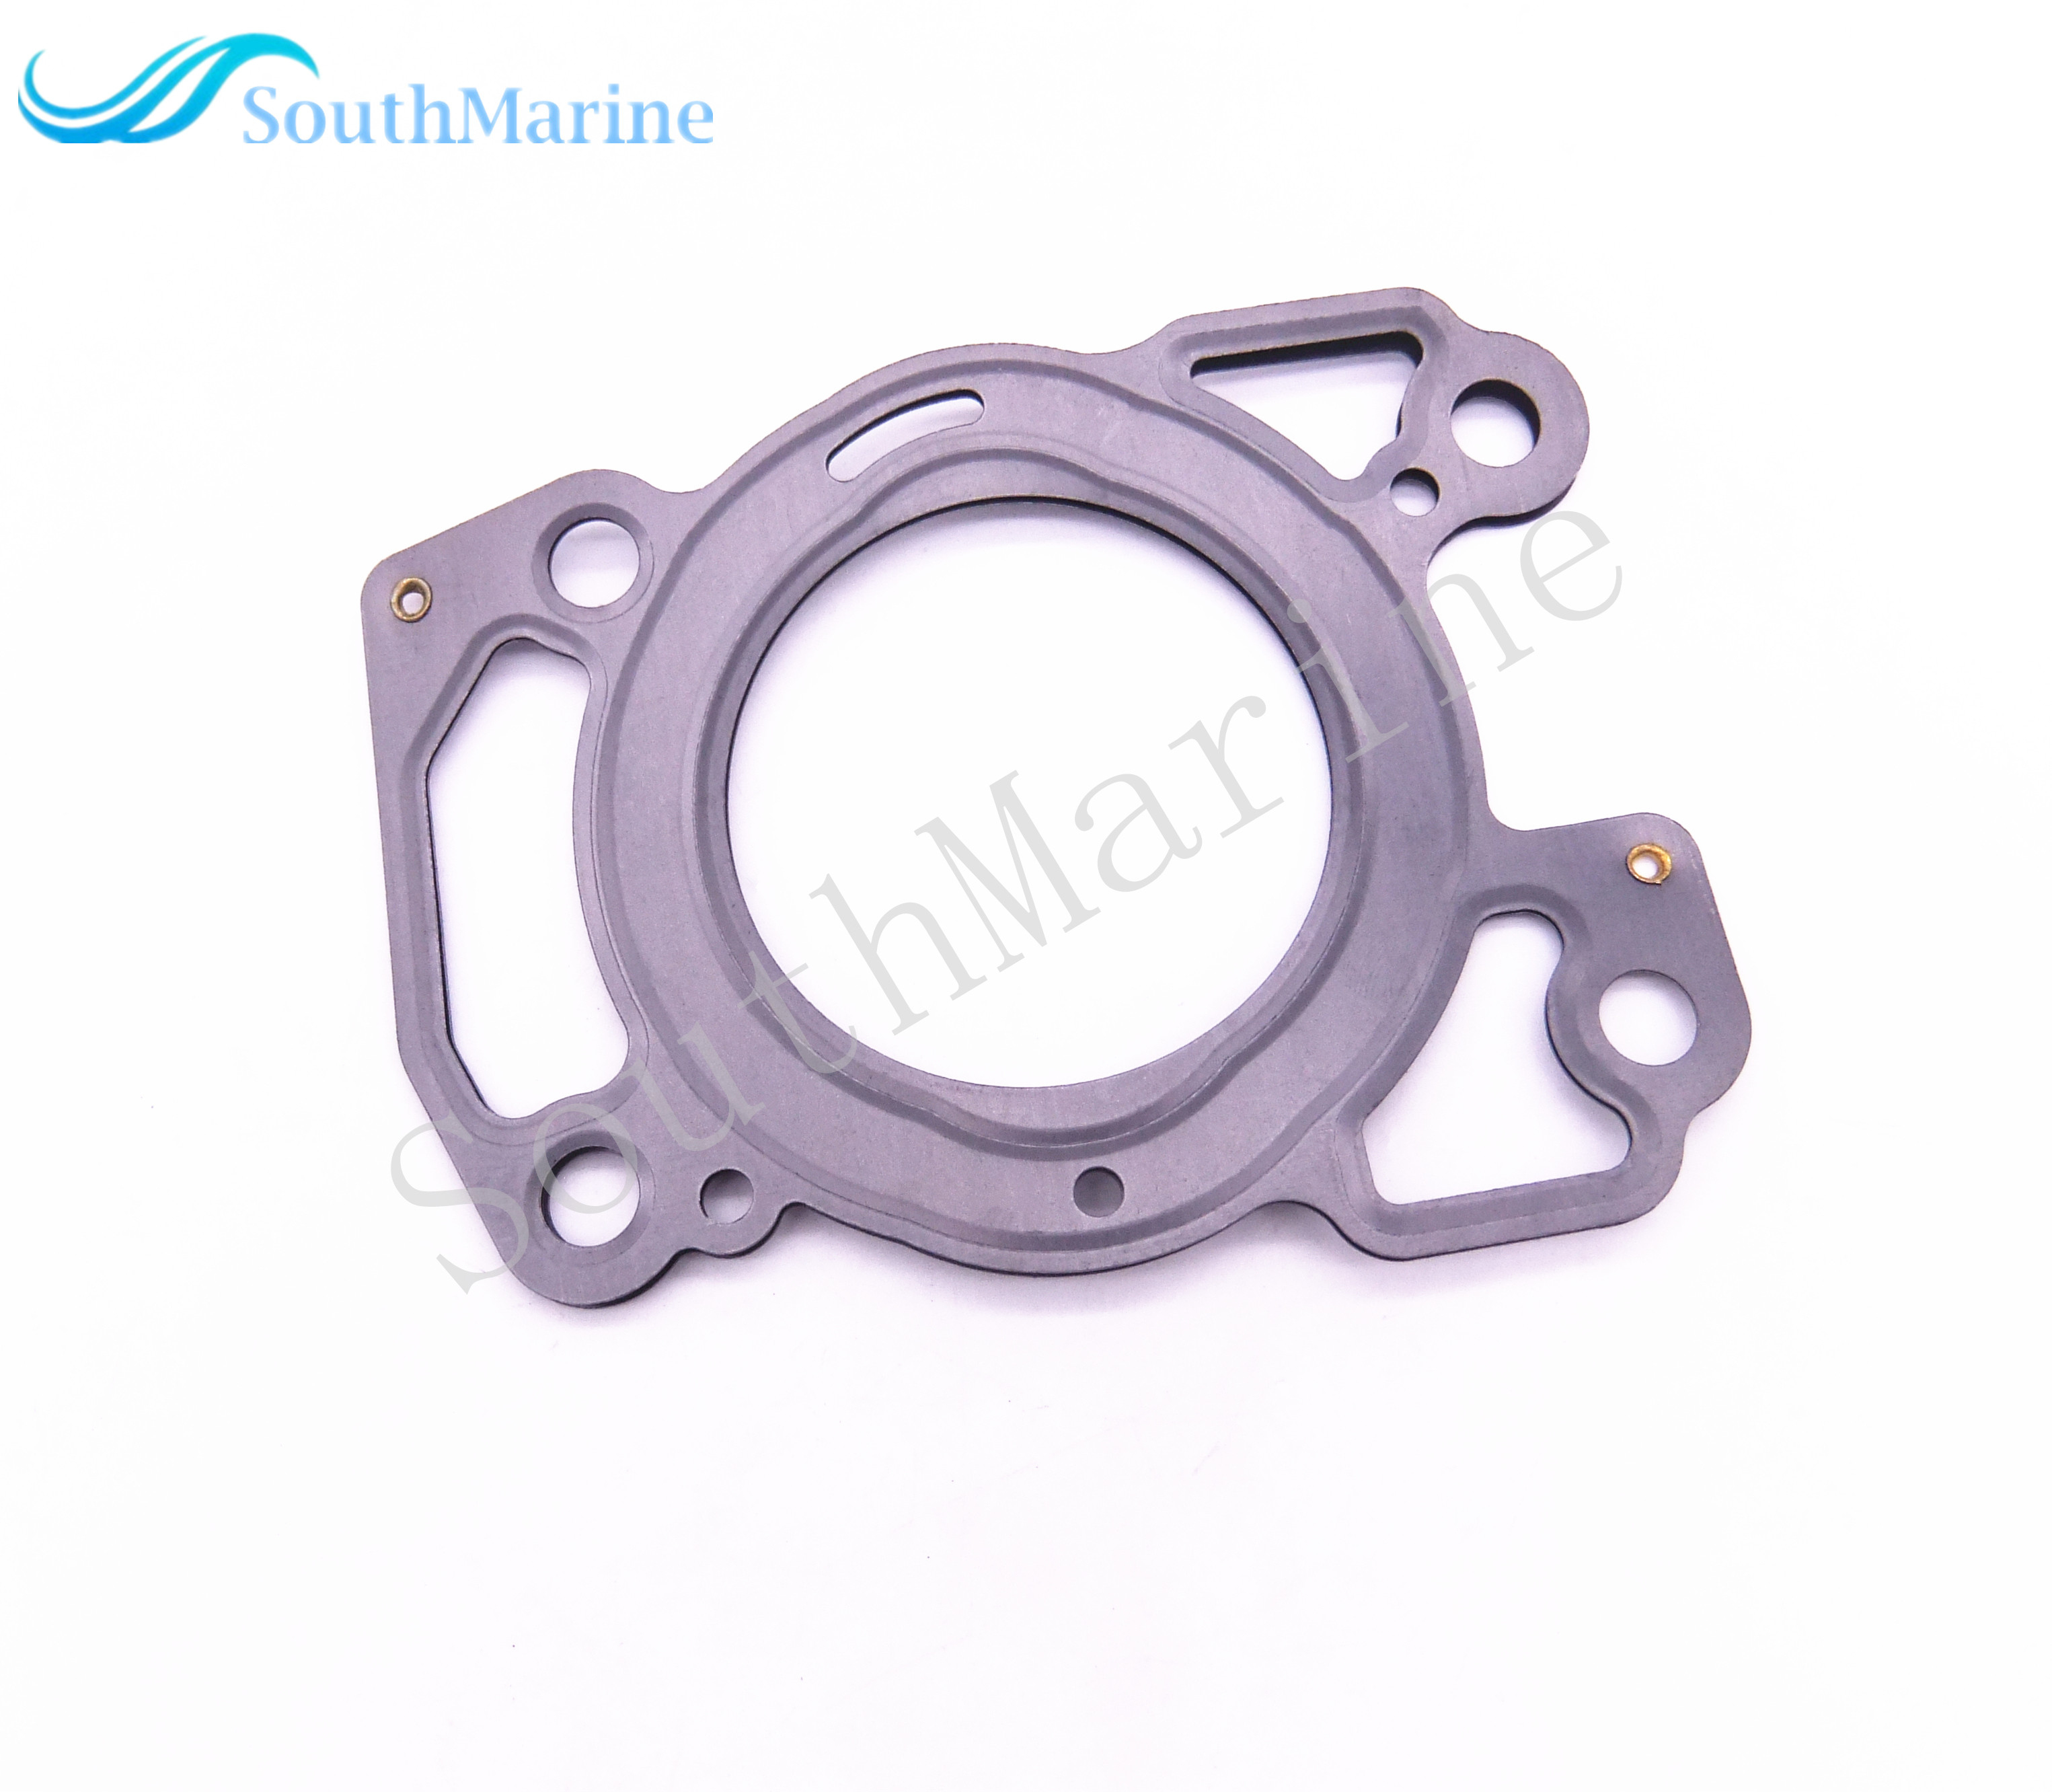 Boat Motor F2.6-04000001 Cylinder Head Gasket for Parsun 4-Stroke F2.6 Outboard Engine